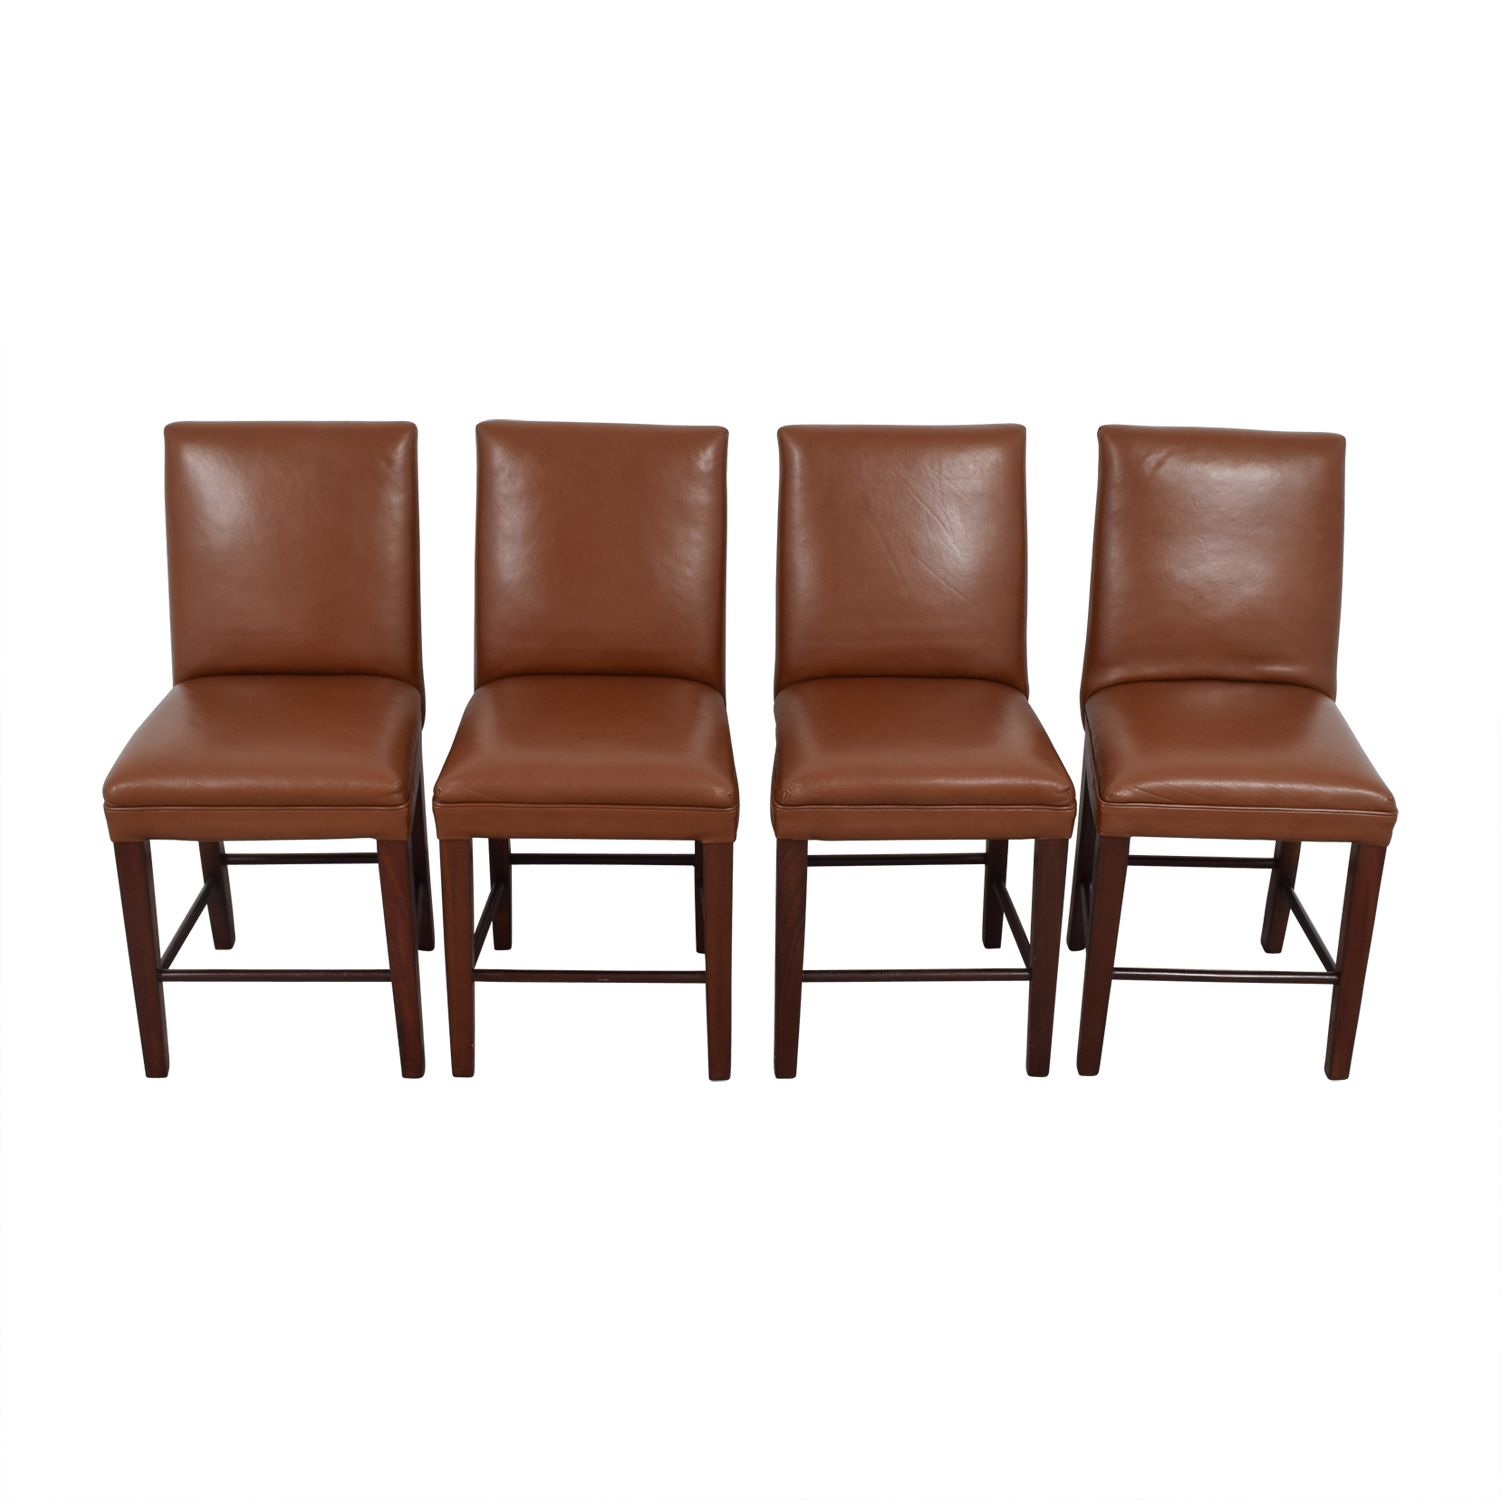 Cognac Leather Dining Chairs on sale